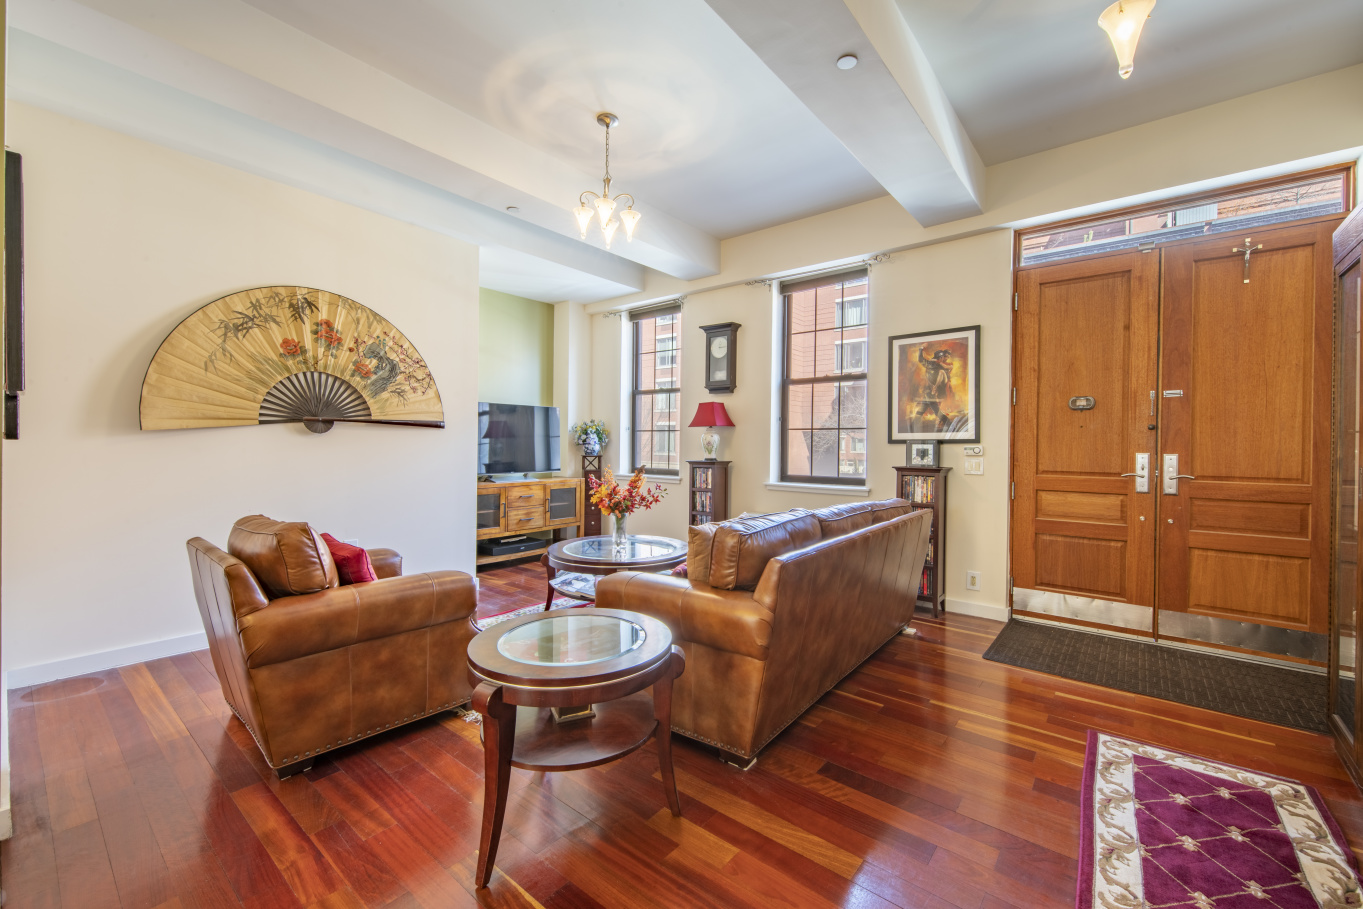 Apartment for sale at 316 West 119th Street, Apt 1-N